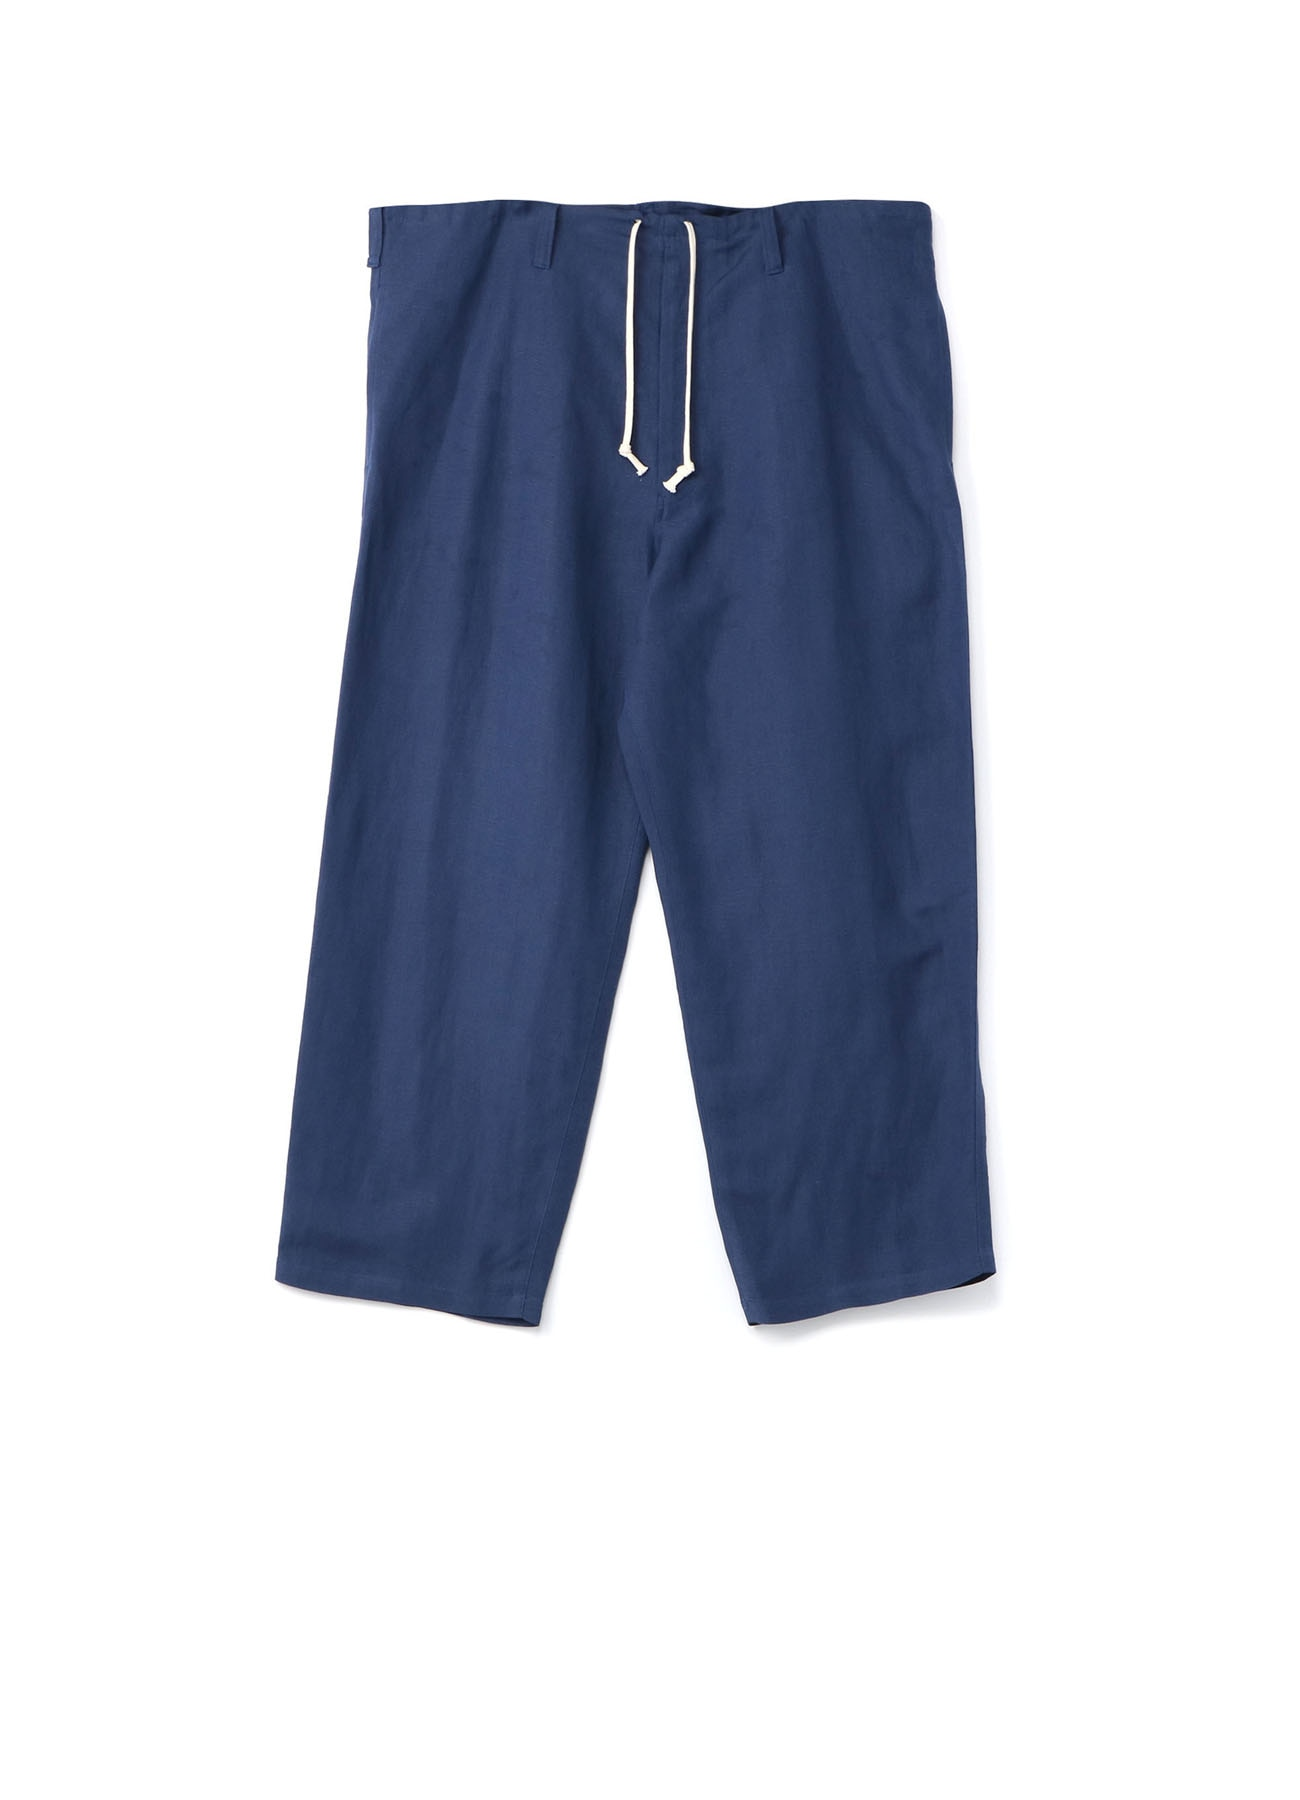 Rayon Linen Easy Cross West Cord Pants